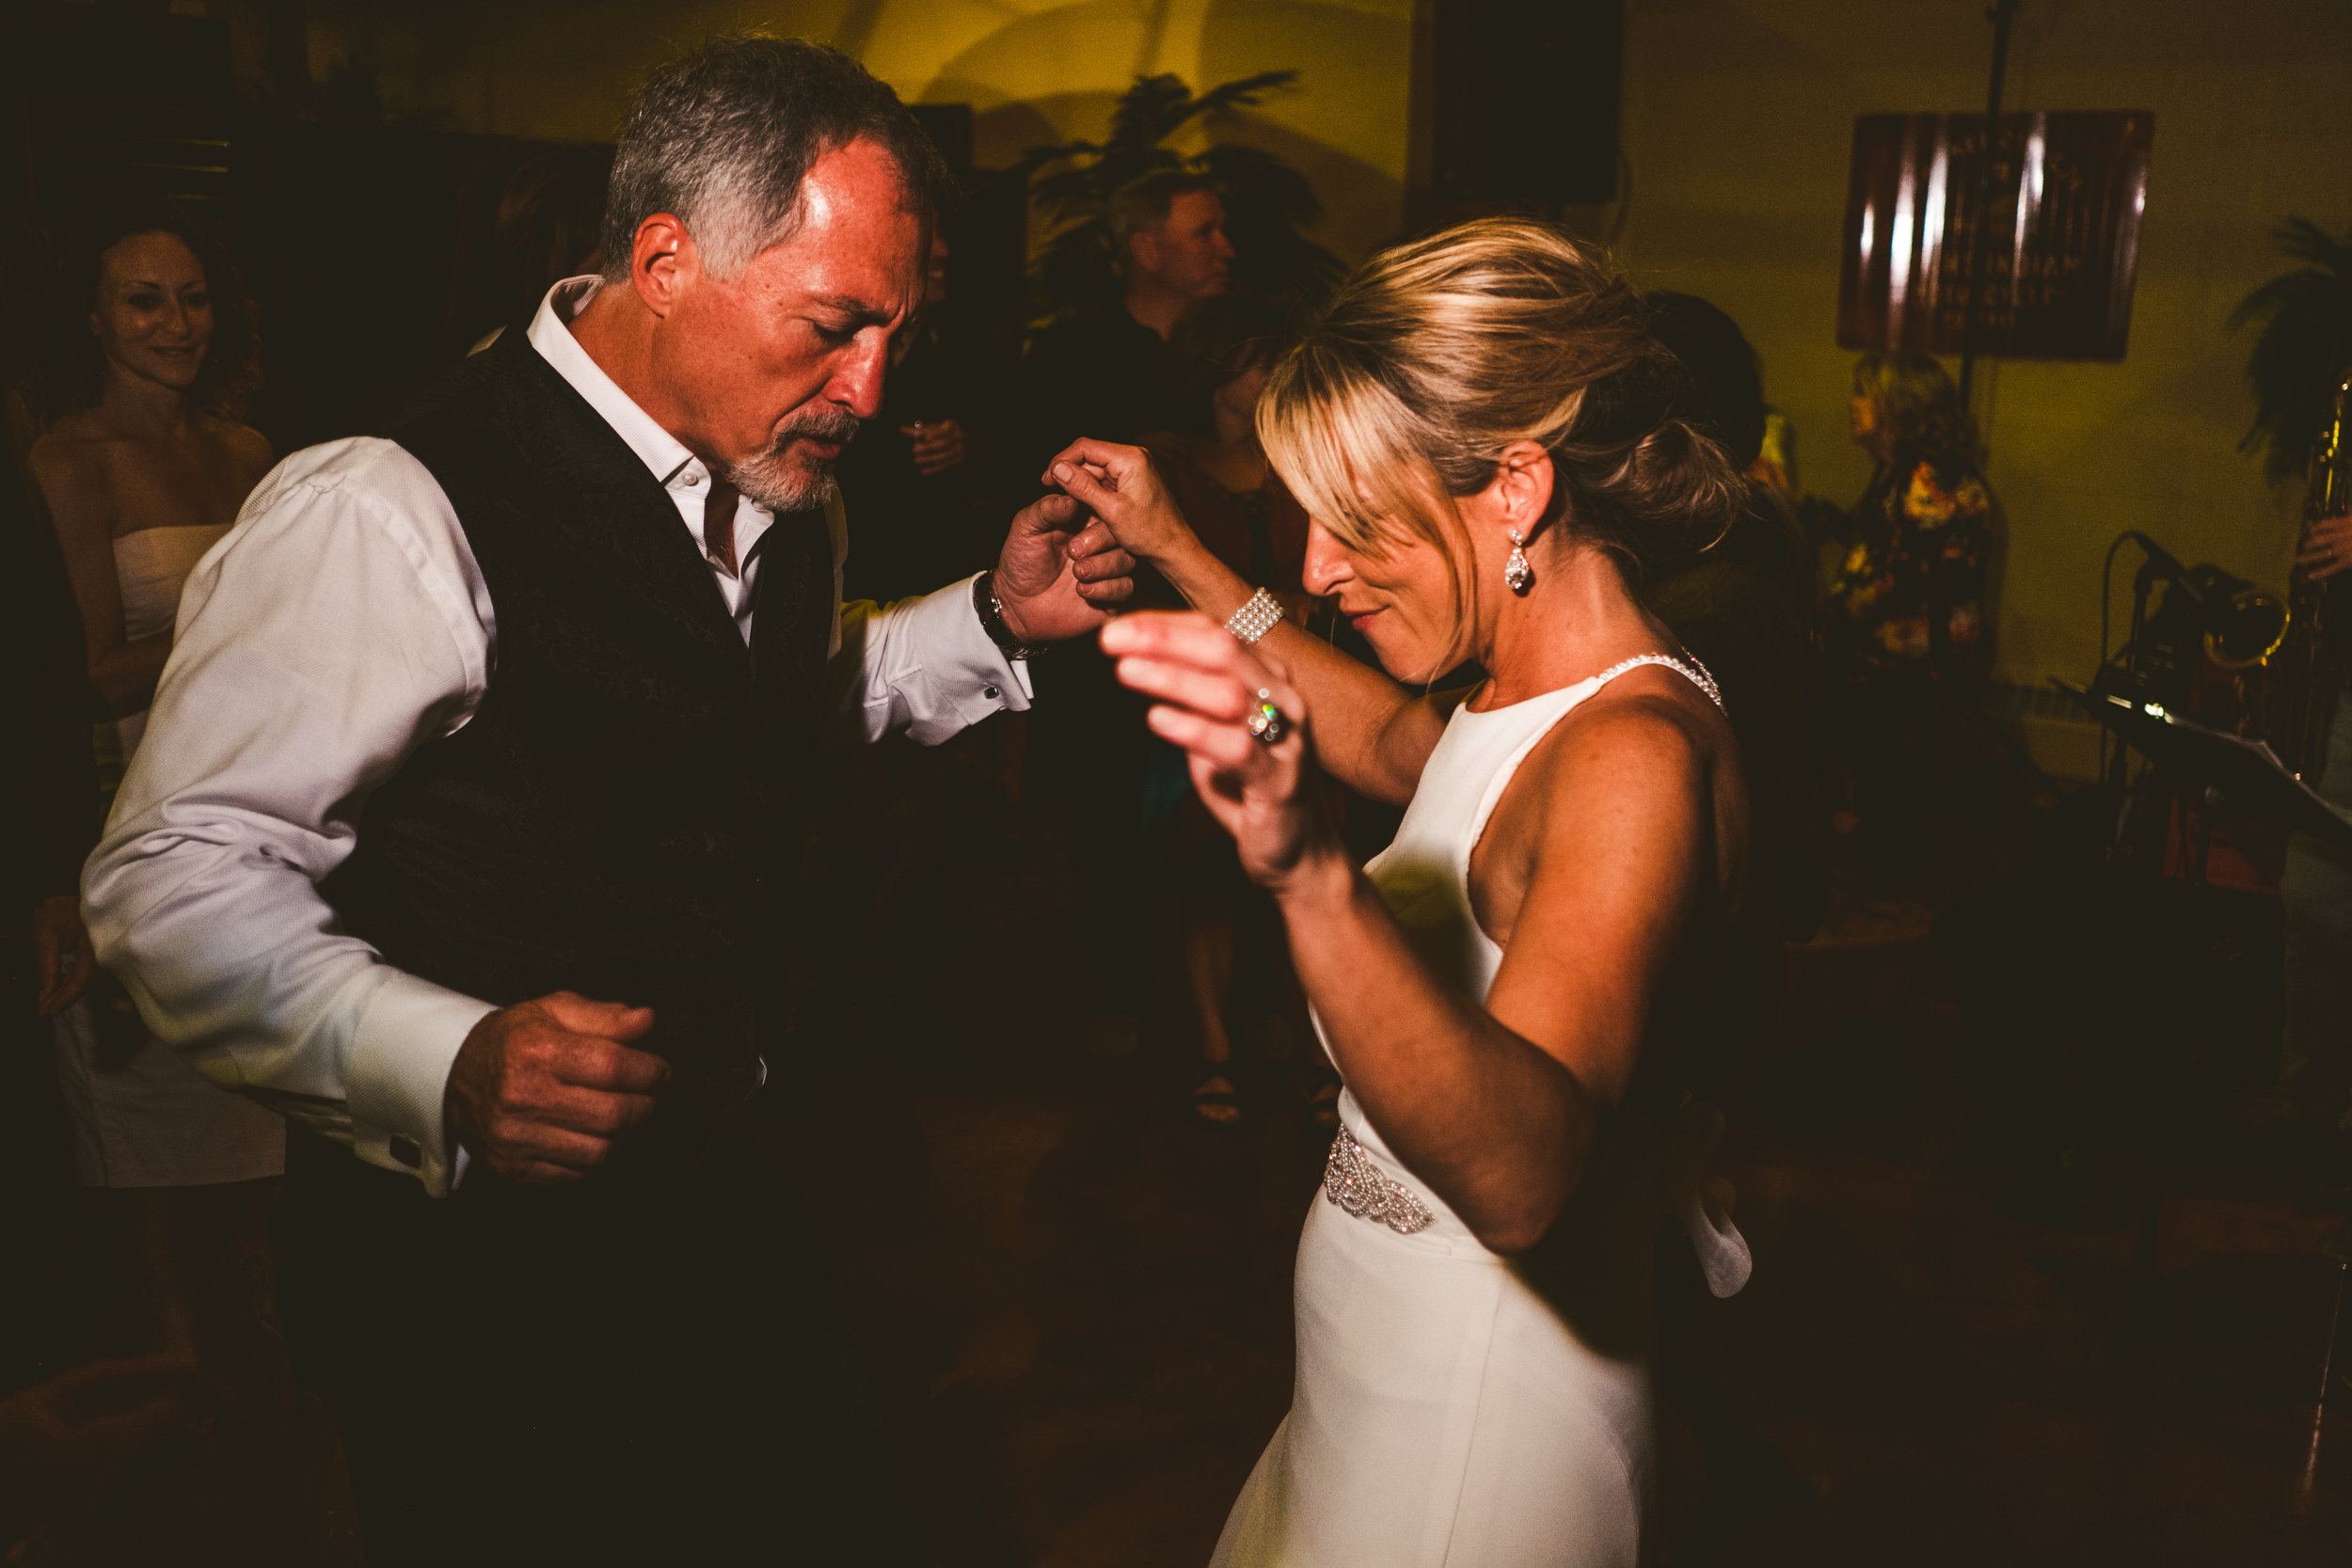 Bride and Groom Share First Dance at Wedding Reception in Toledo Ohio with Wedding Photographers